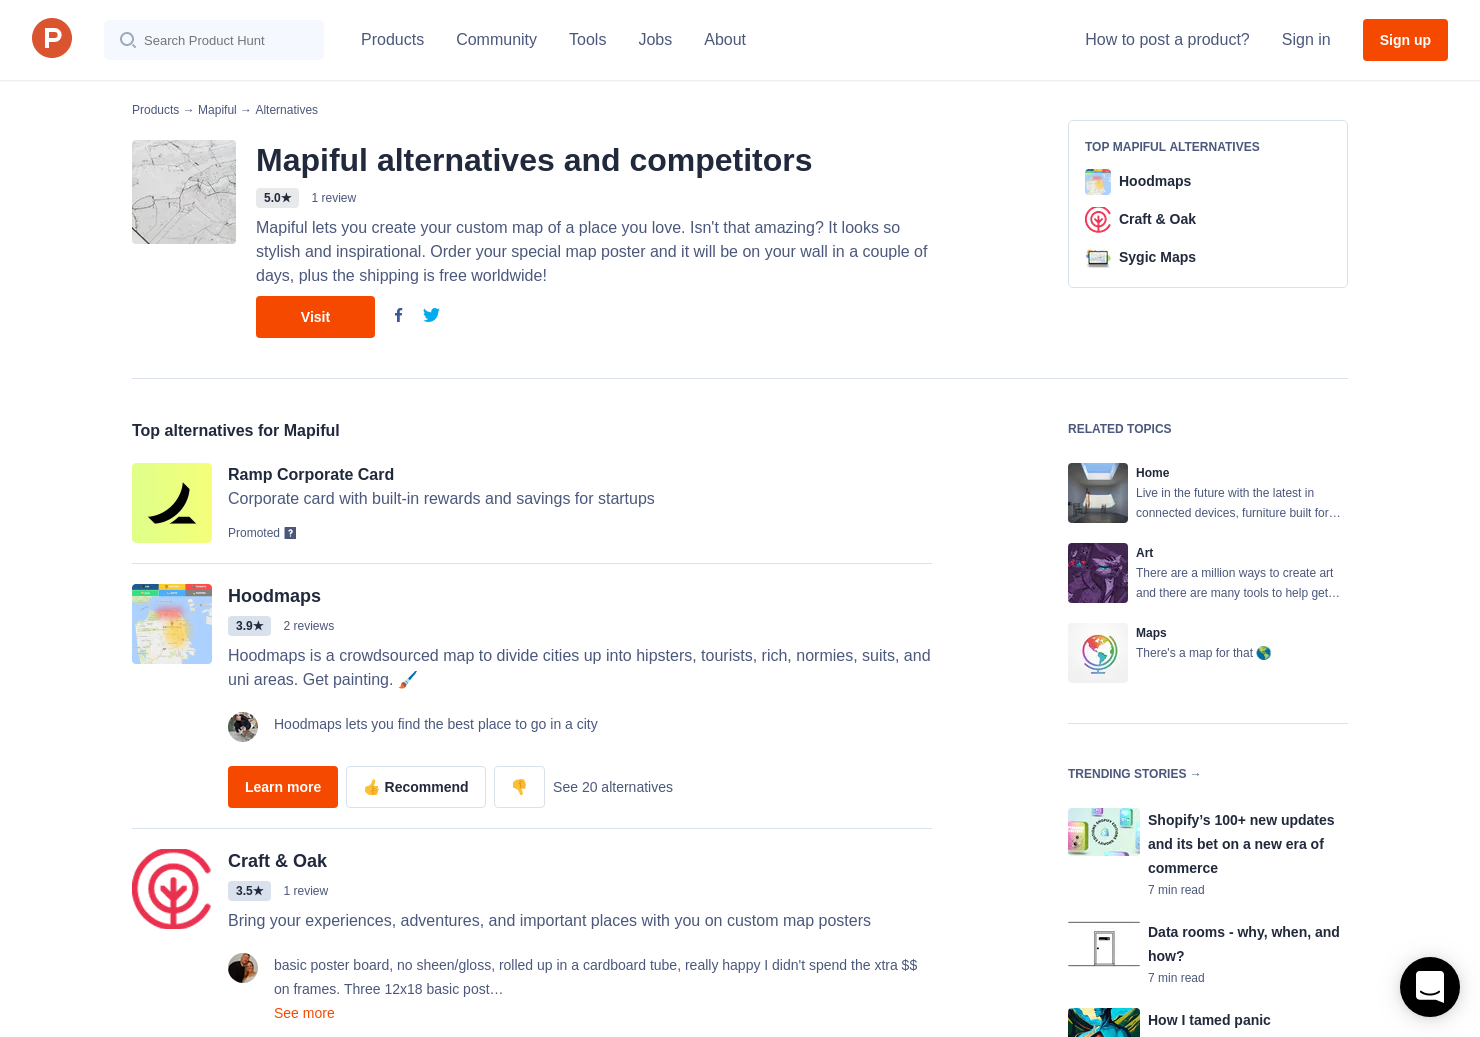 28 Alternatives to Mapiful | Product Hunt